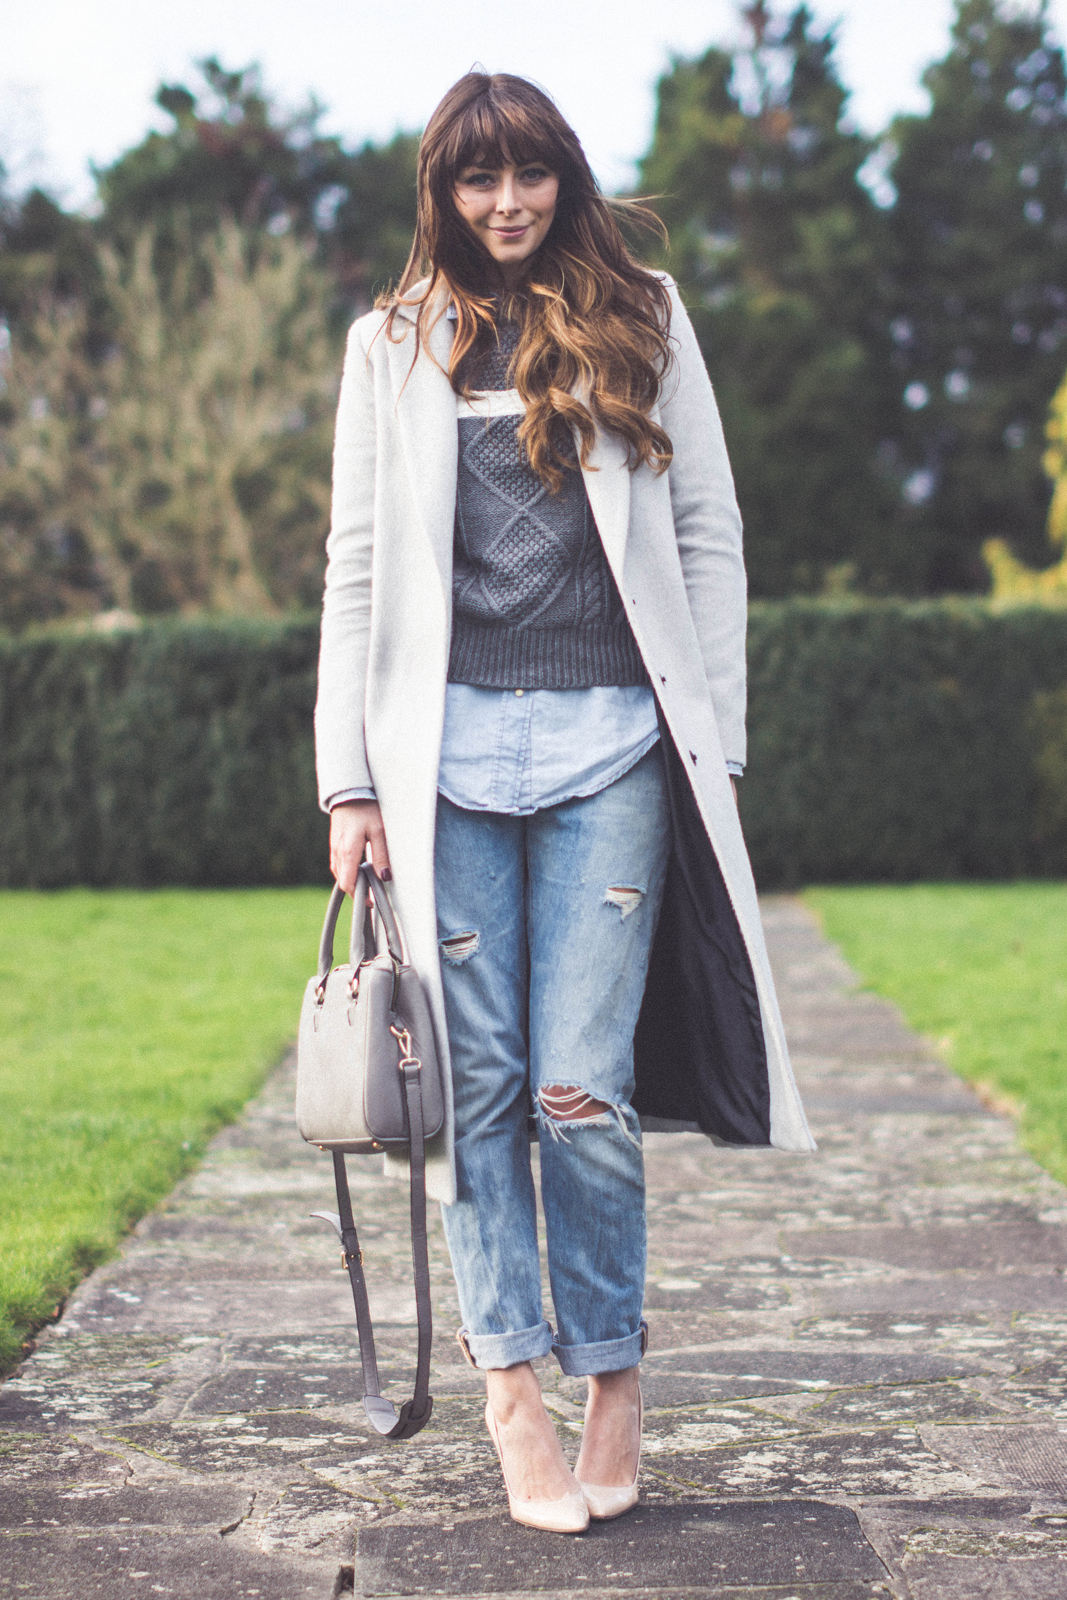 EJSTYLE - Dorothy Perkins grey boyfriend coat, Levis 501 boyfriend bleach jeans, Daniel Footwear nude courts, Lookbook store grey jumper, denim shirt, Zara mini city bag, OOTD, winter outfit, layers